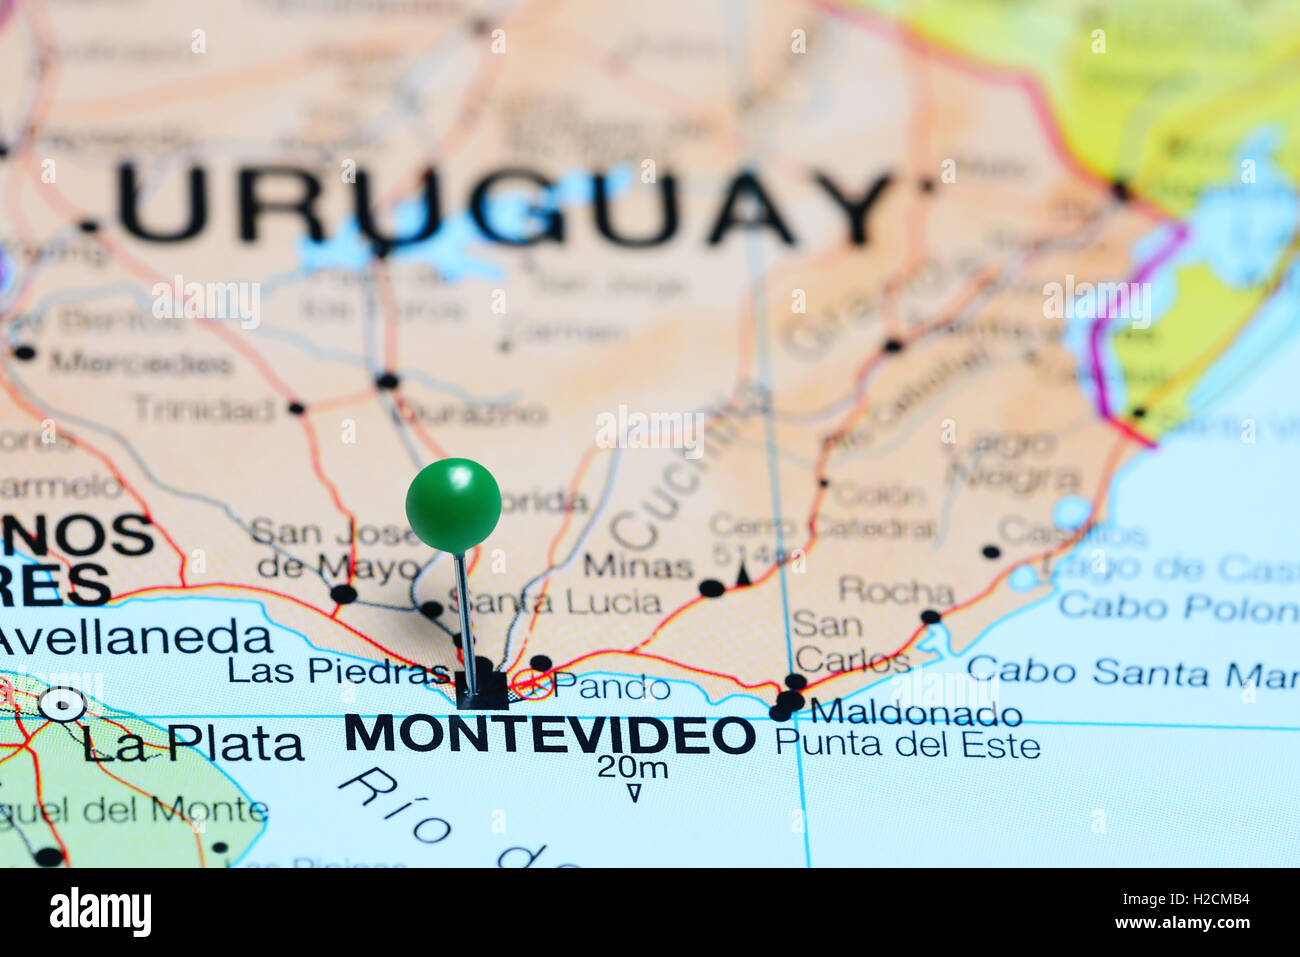 Montevideo pinned on a map of Uruguay Stock Photo: 121981304 - Alamy